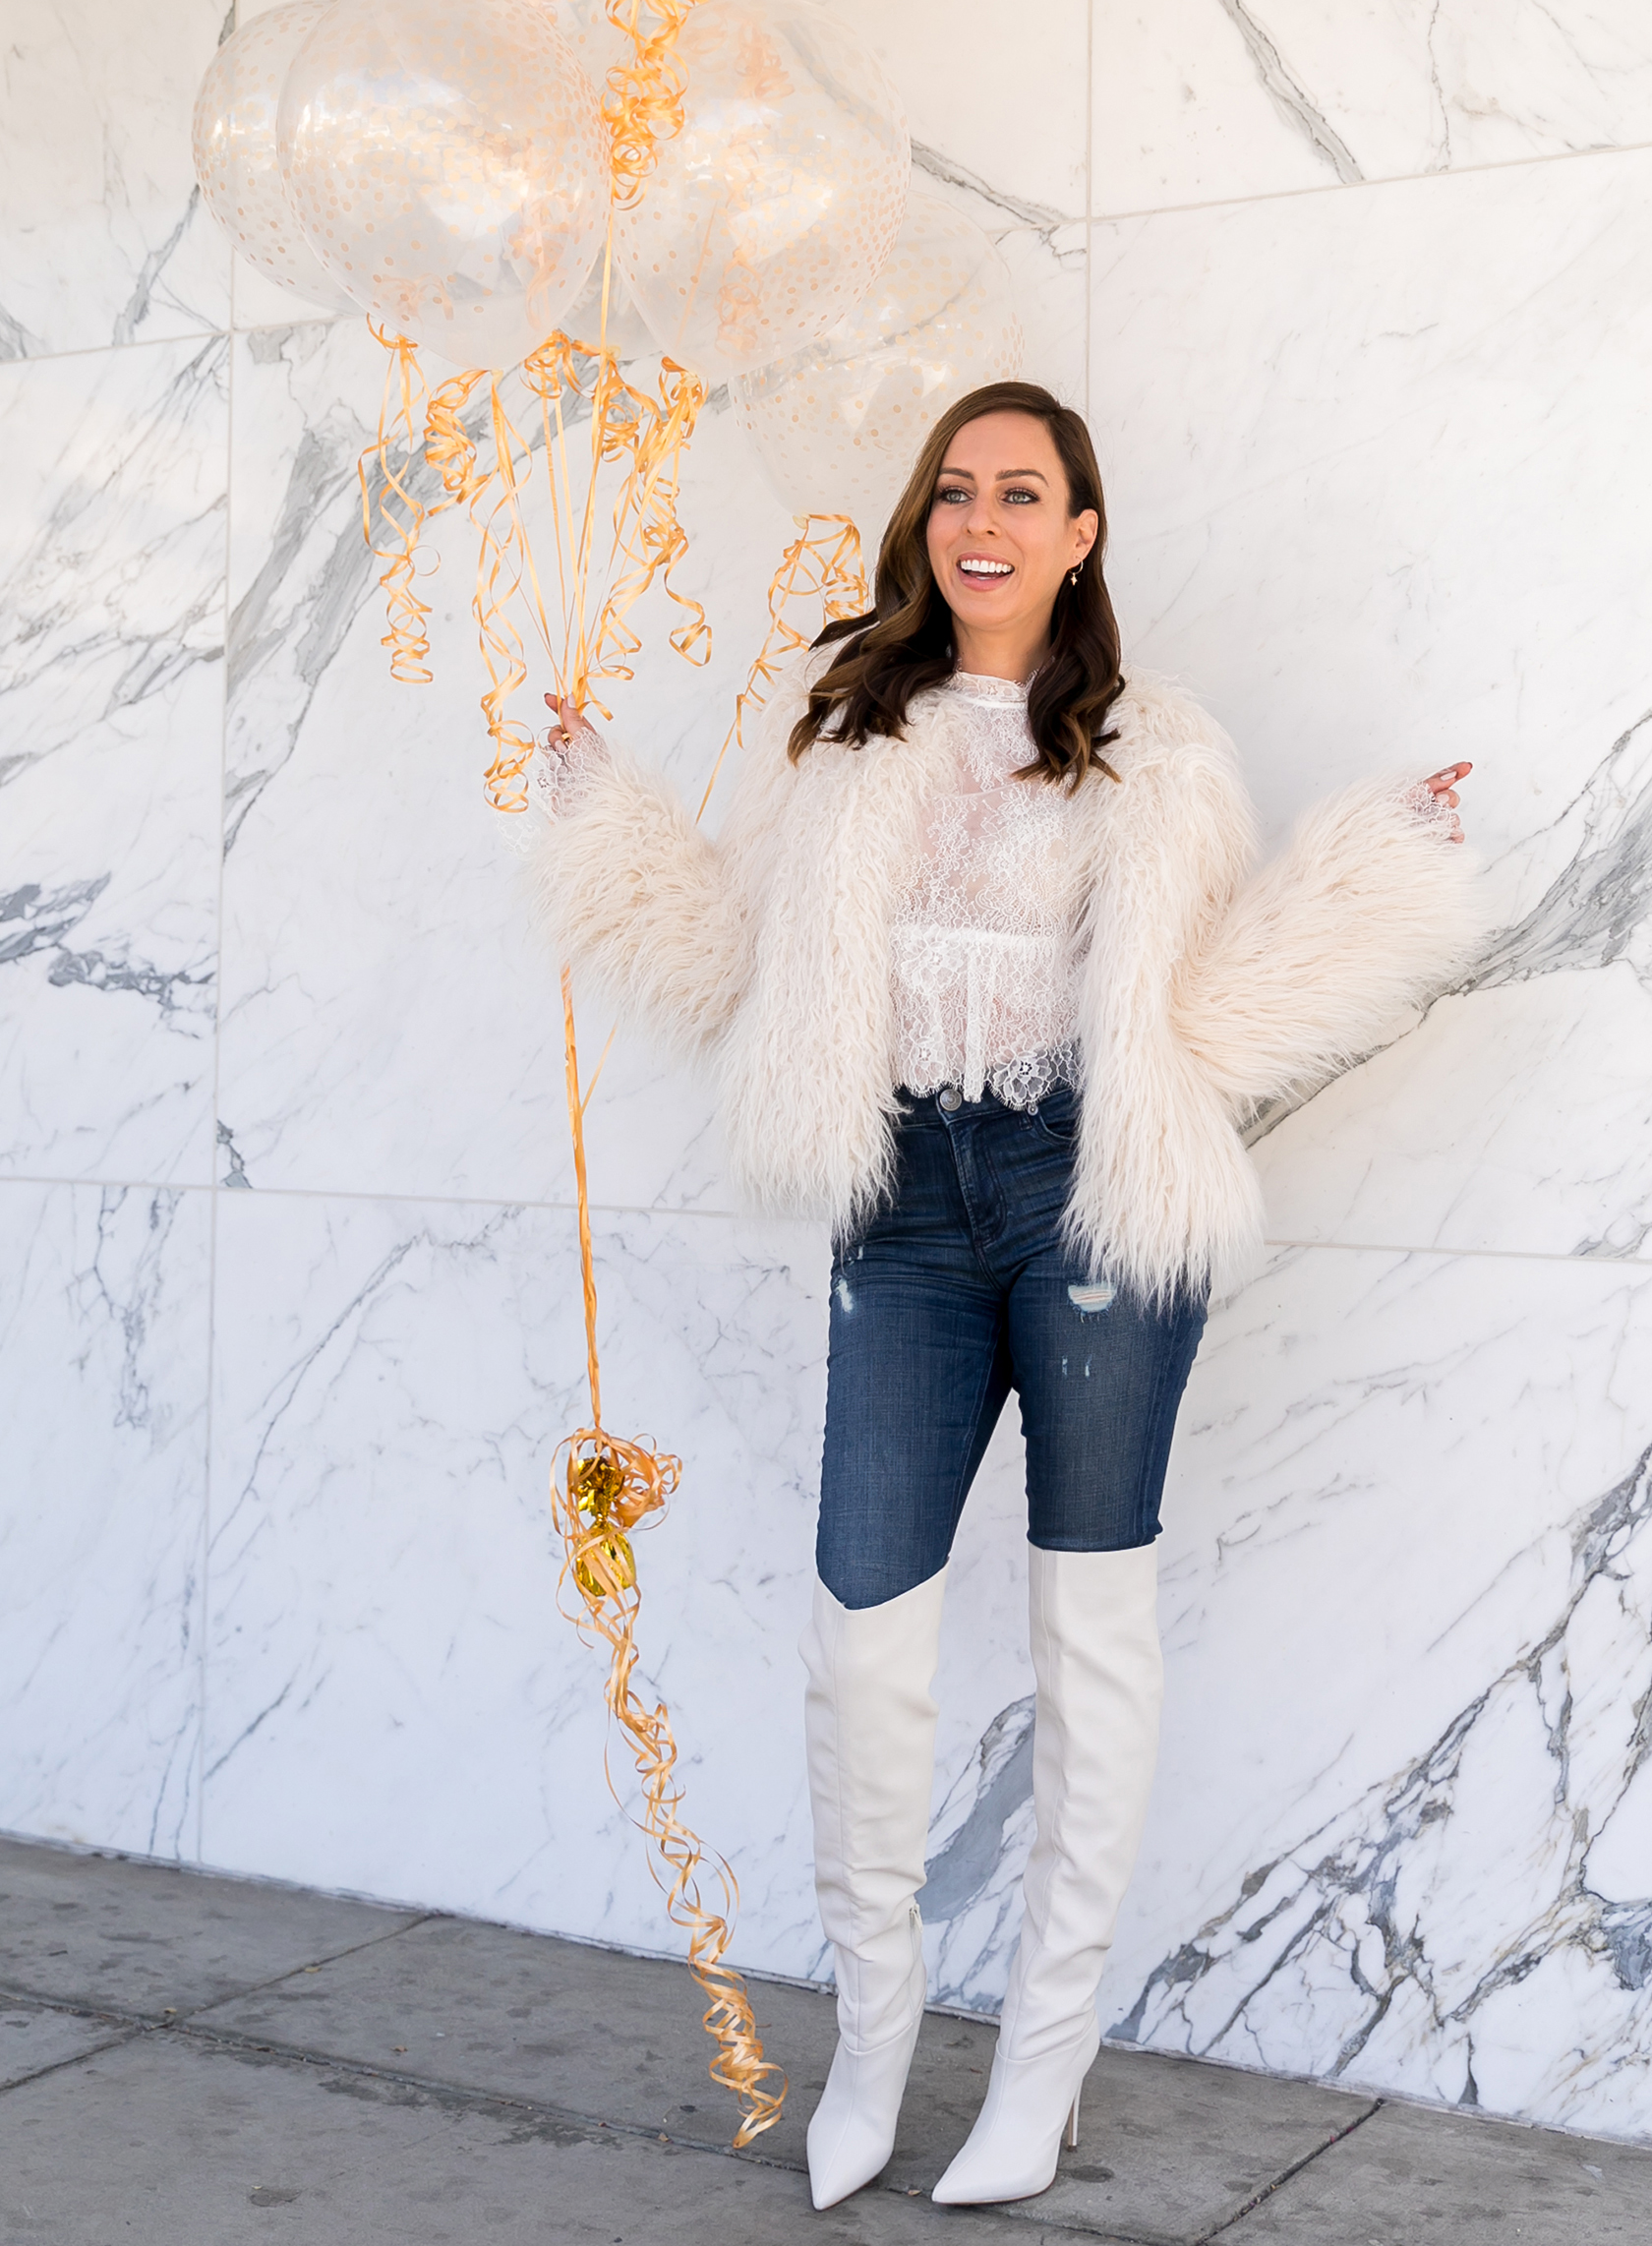 Sydne Style shows what to wear with over the knee boots for winter outfit ideas with white fur